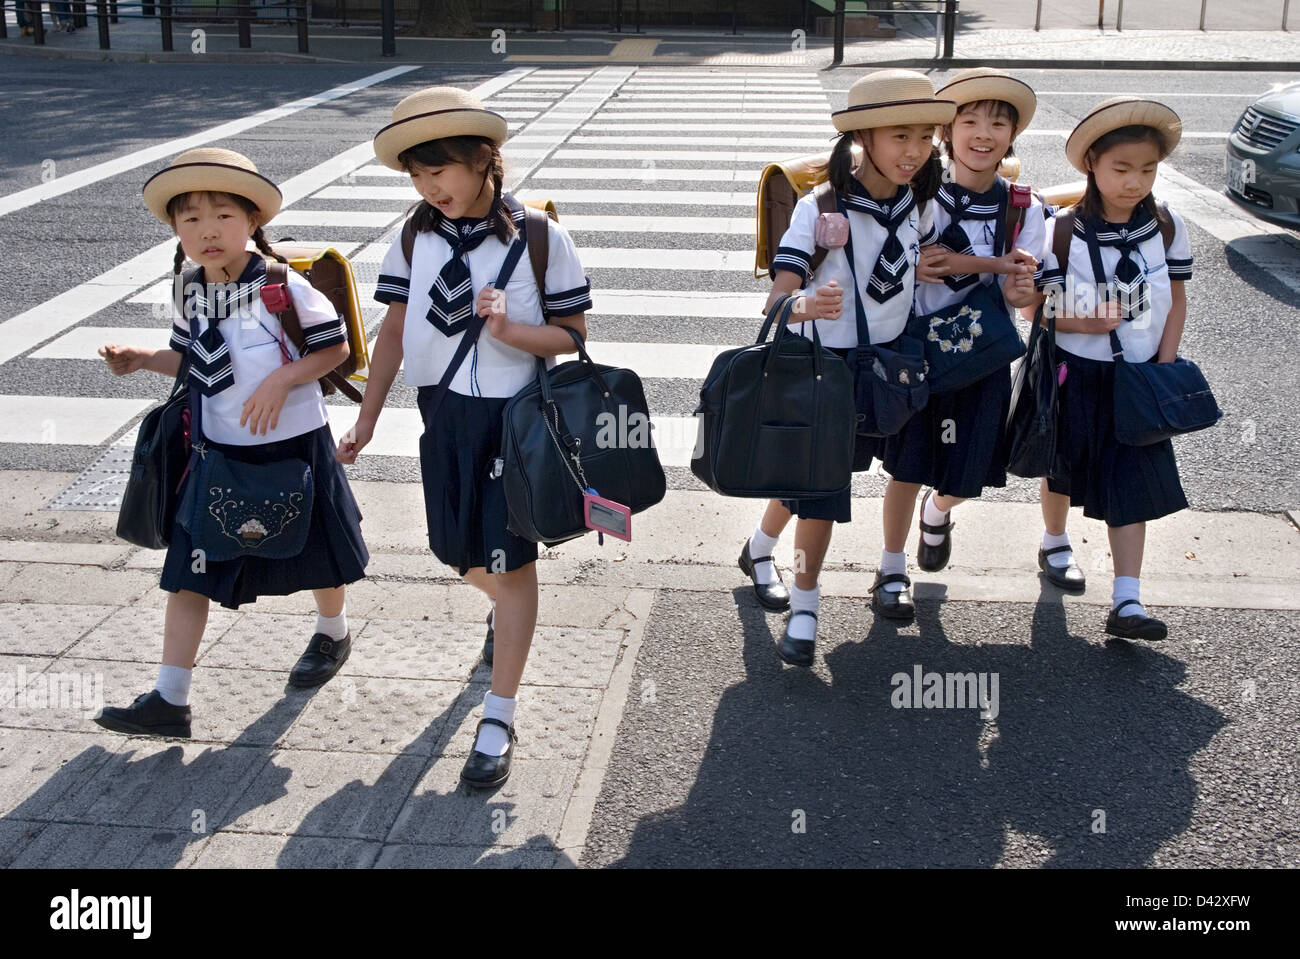 Five Elementary School Girls In Sailor Uniforms And Cute Hats